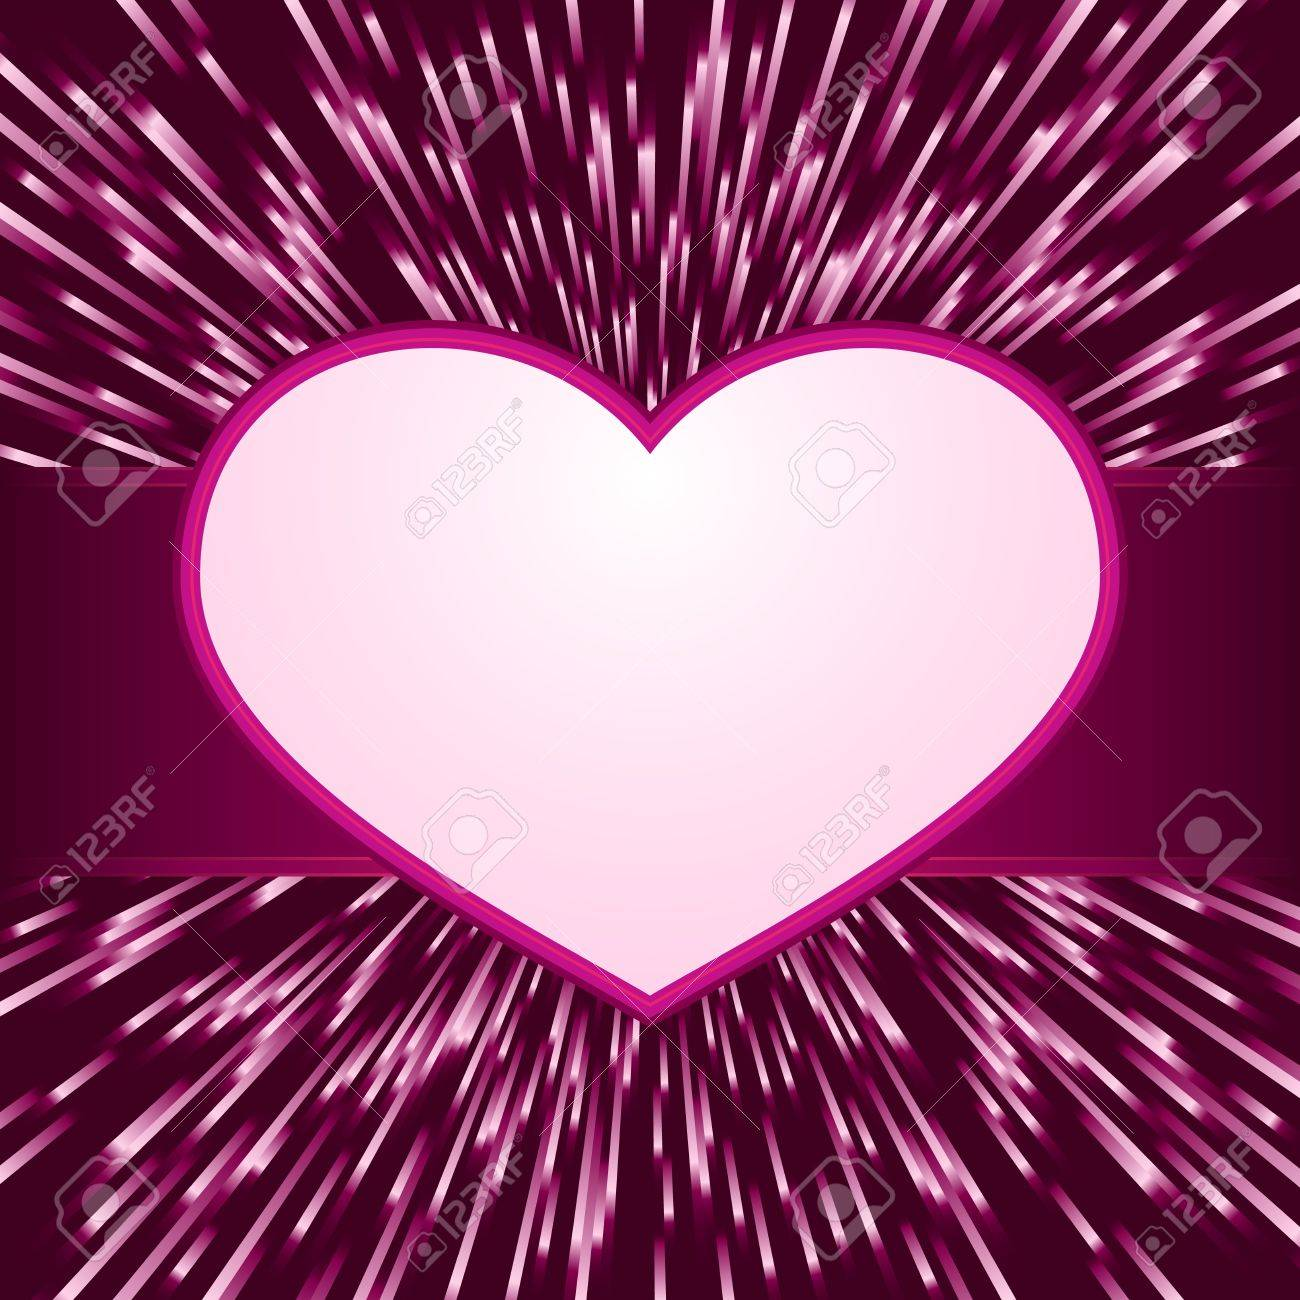 Pink purple explosion of light with centered  heart frame with space for your text. Great for your romantic designs, or for Valentines day. Stock Vector - 8557792